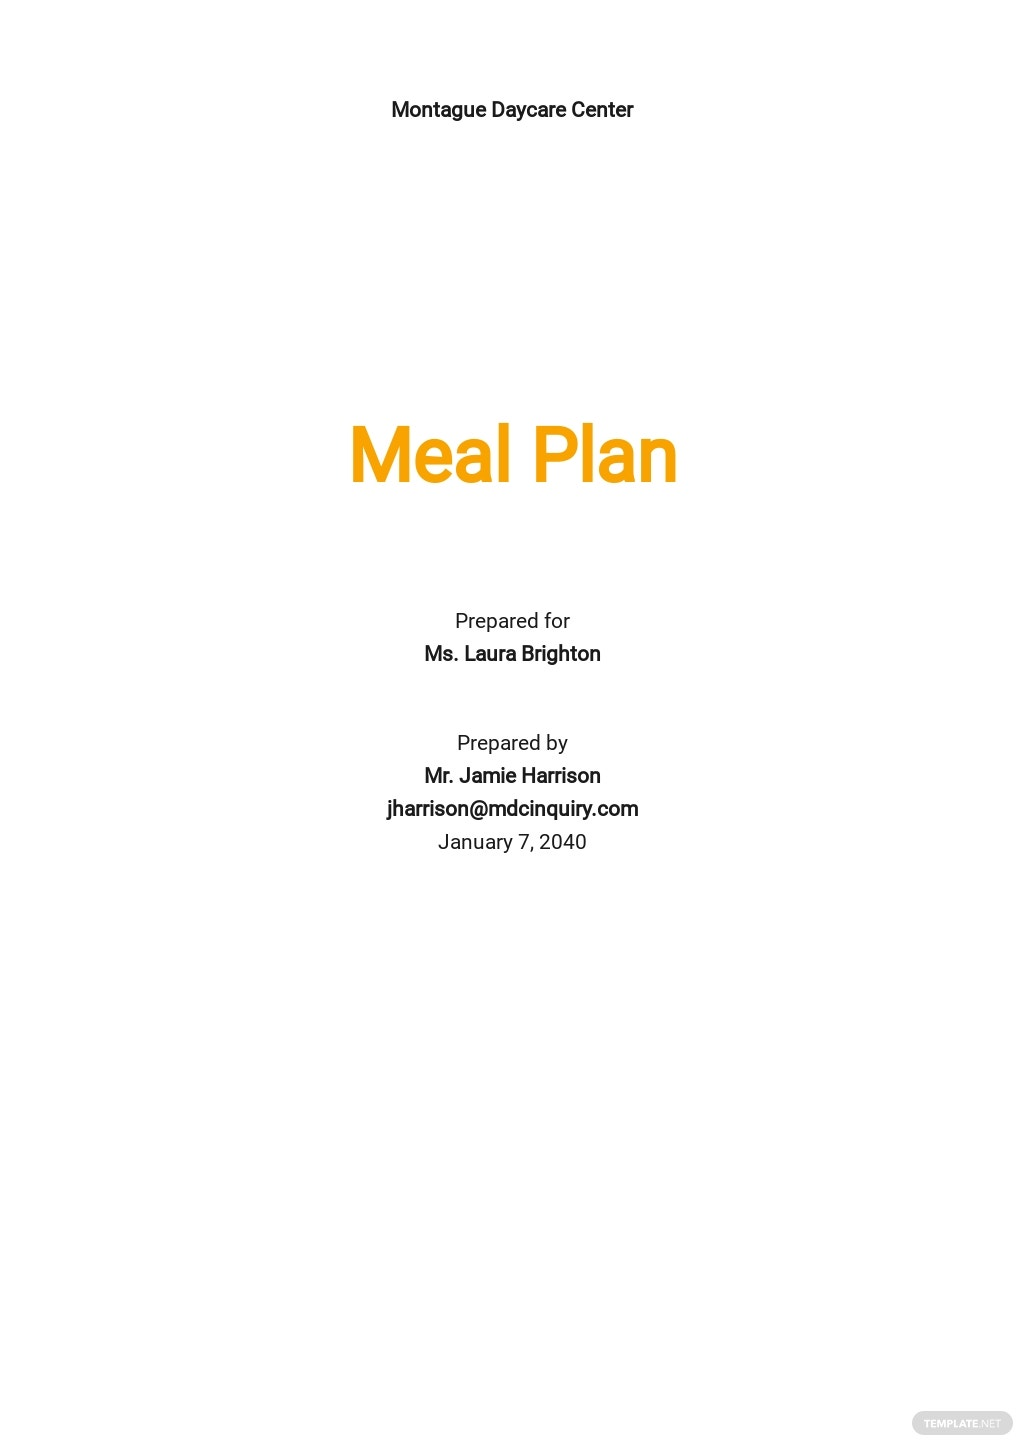 Child Care Meal Plan Template [Free PDF] - Google Docs, Word, Apple Pages, PDF